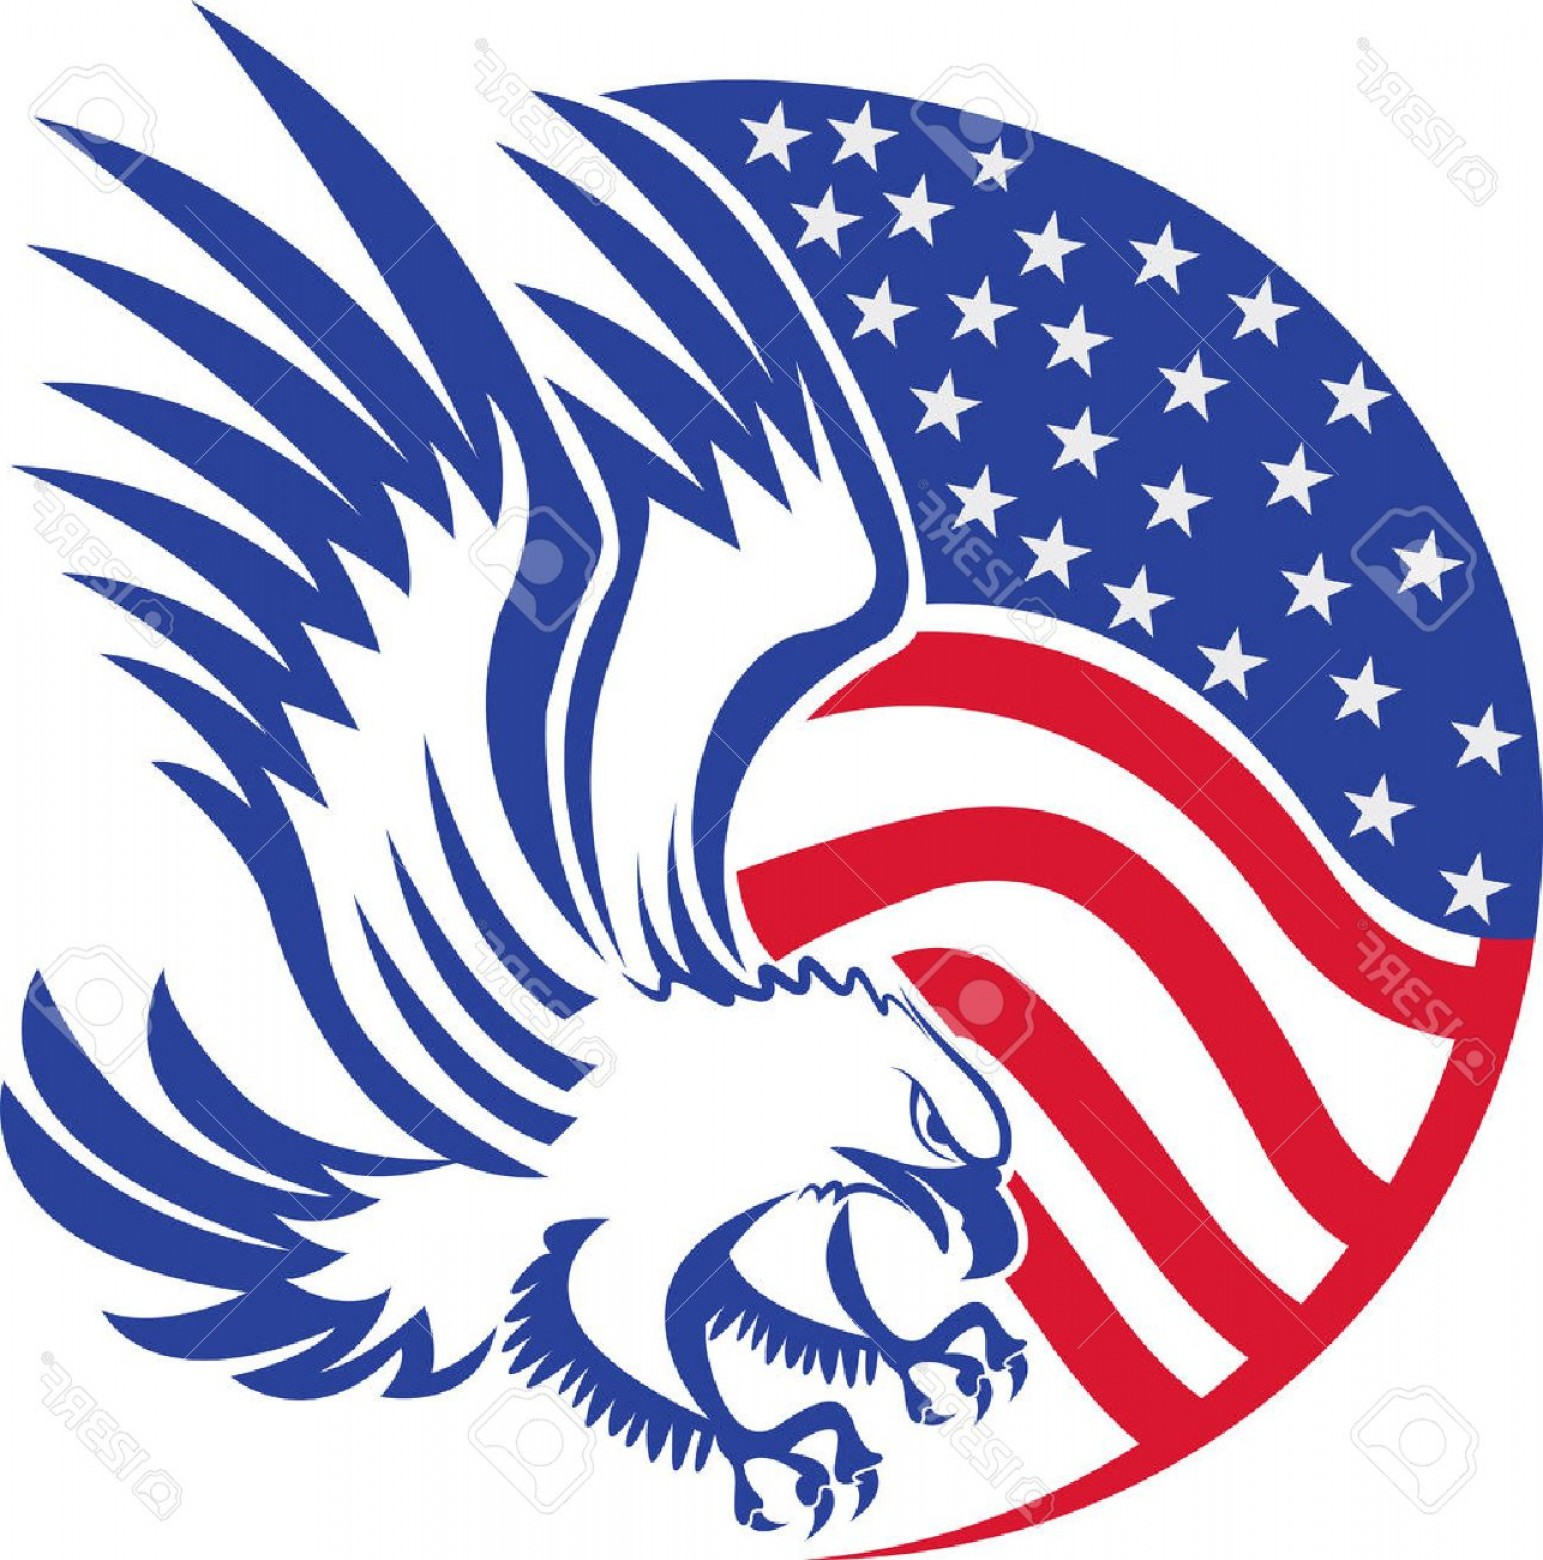 Patriotic Bald Eagle Vector: Photostock Vector Illustration Art Of A American Bald Eagle With Isolated Background